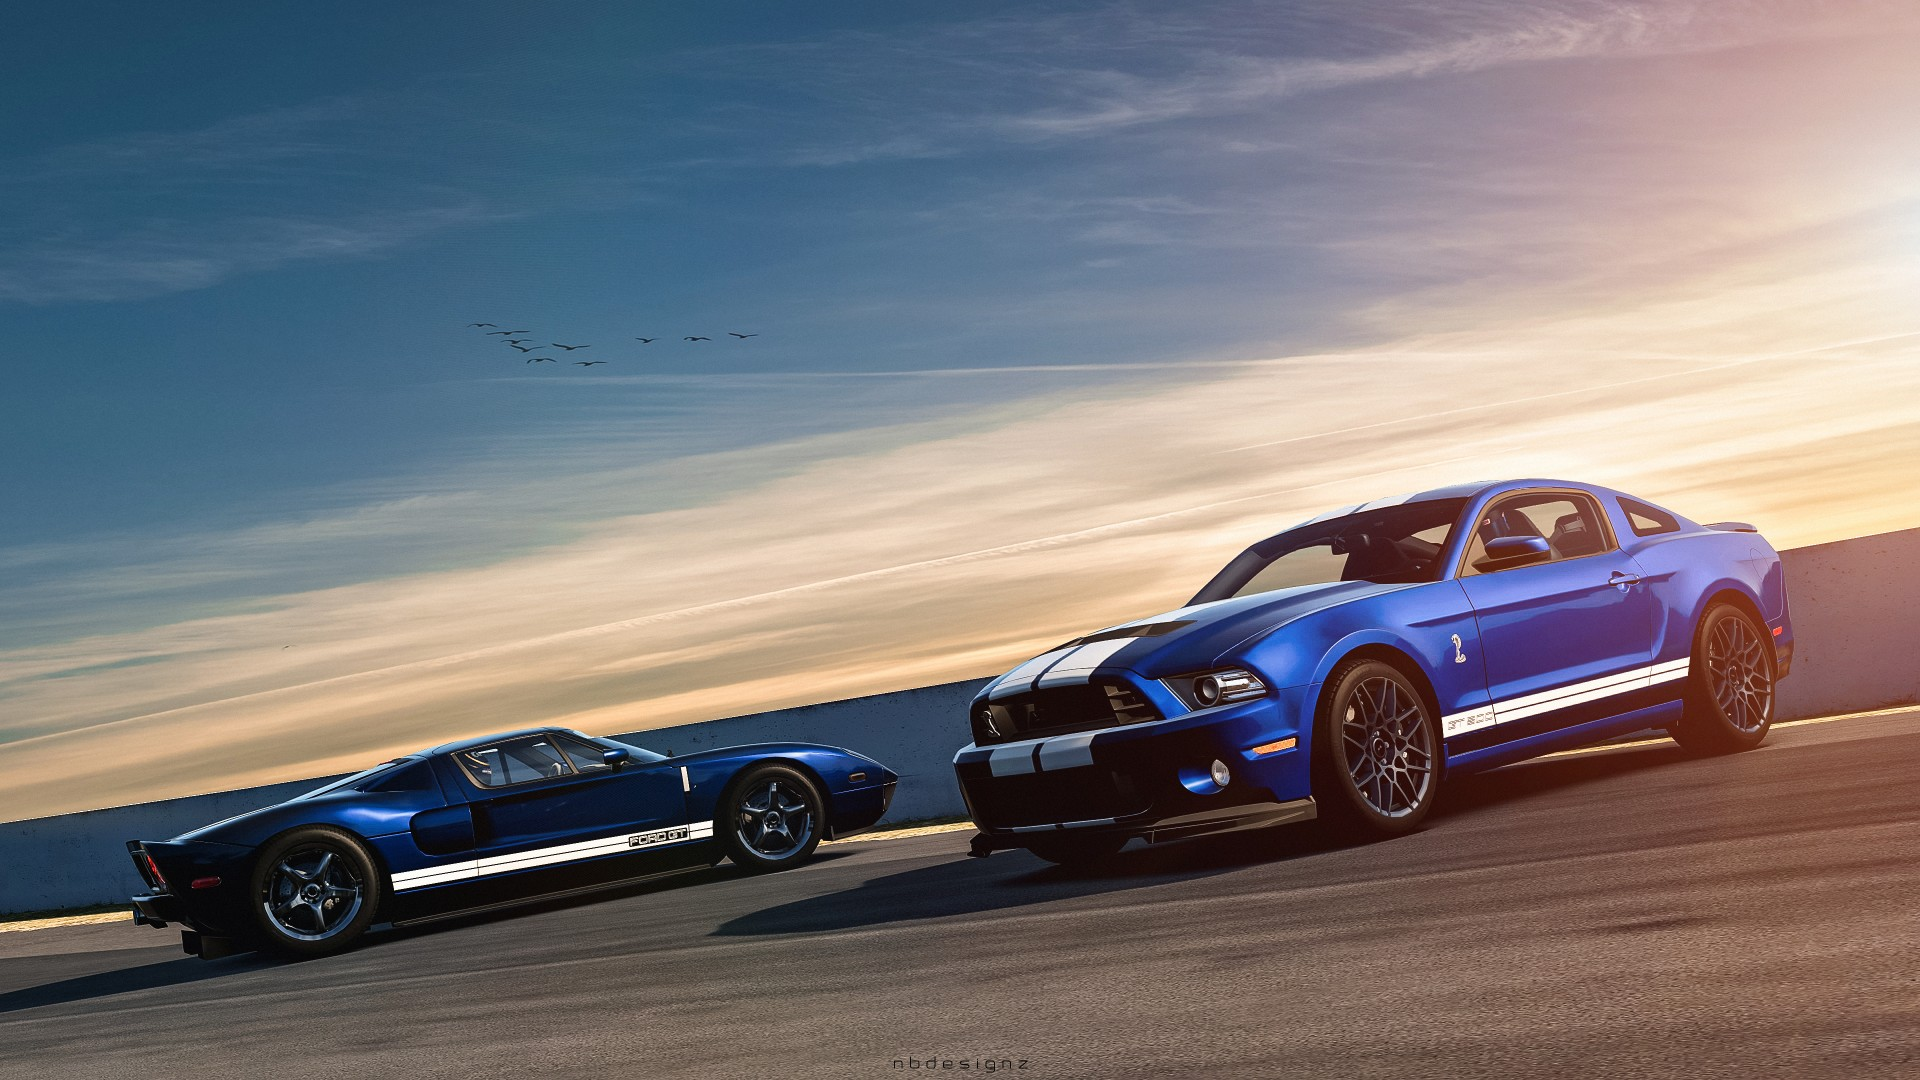 2017 Shelby Gt500 >> Ford Mustang Shelby GT500 Ford GT Wallpaper | HD Car ...